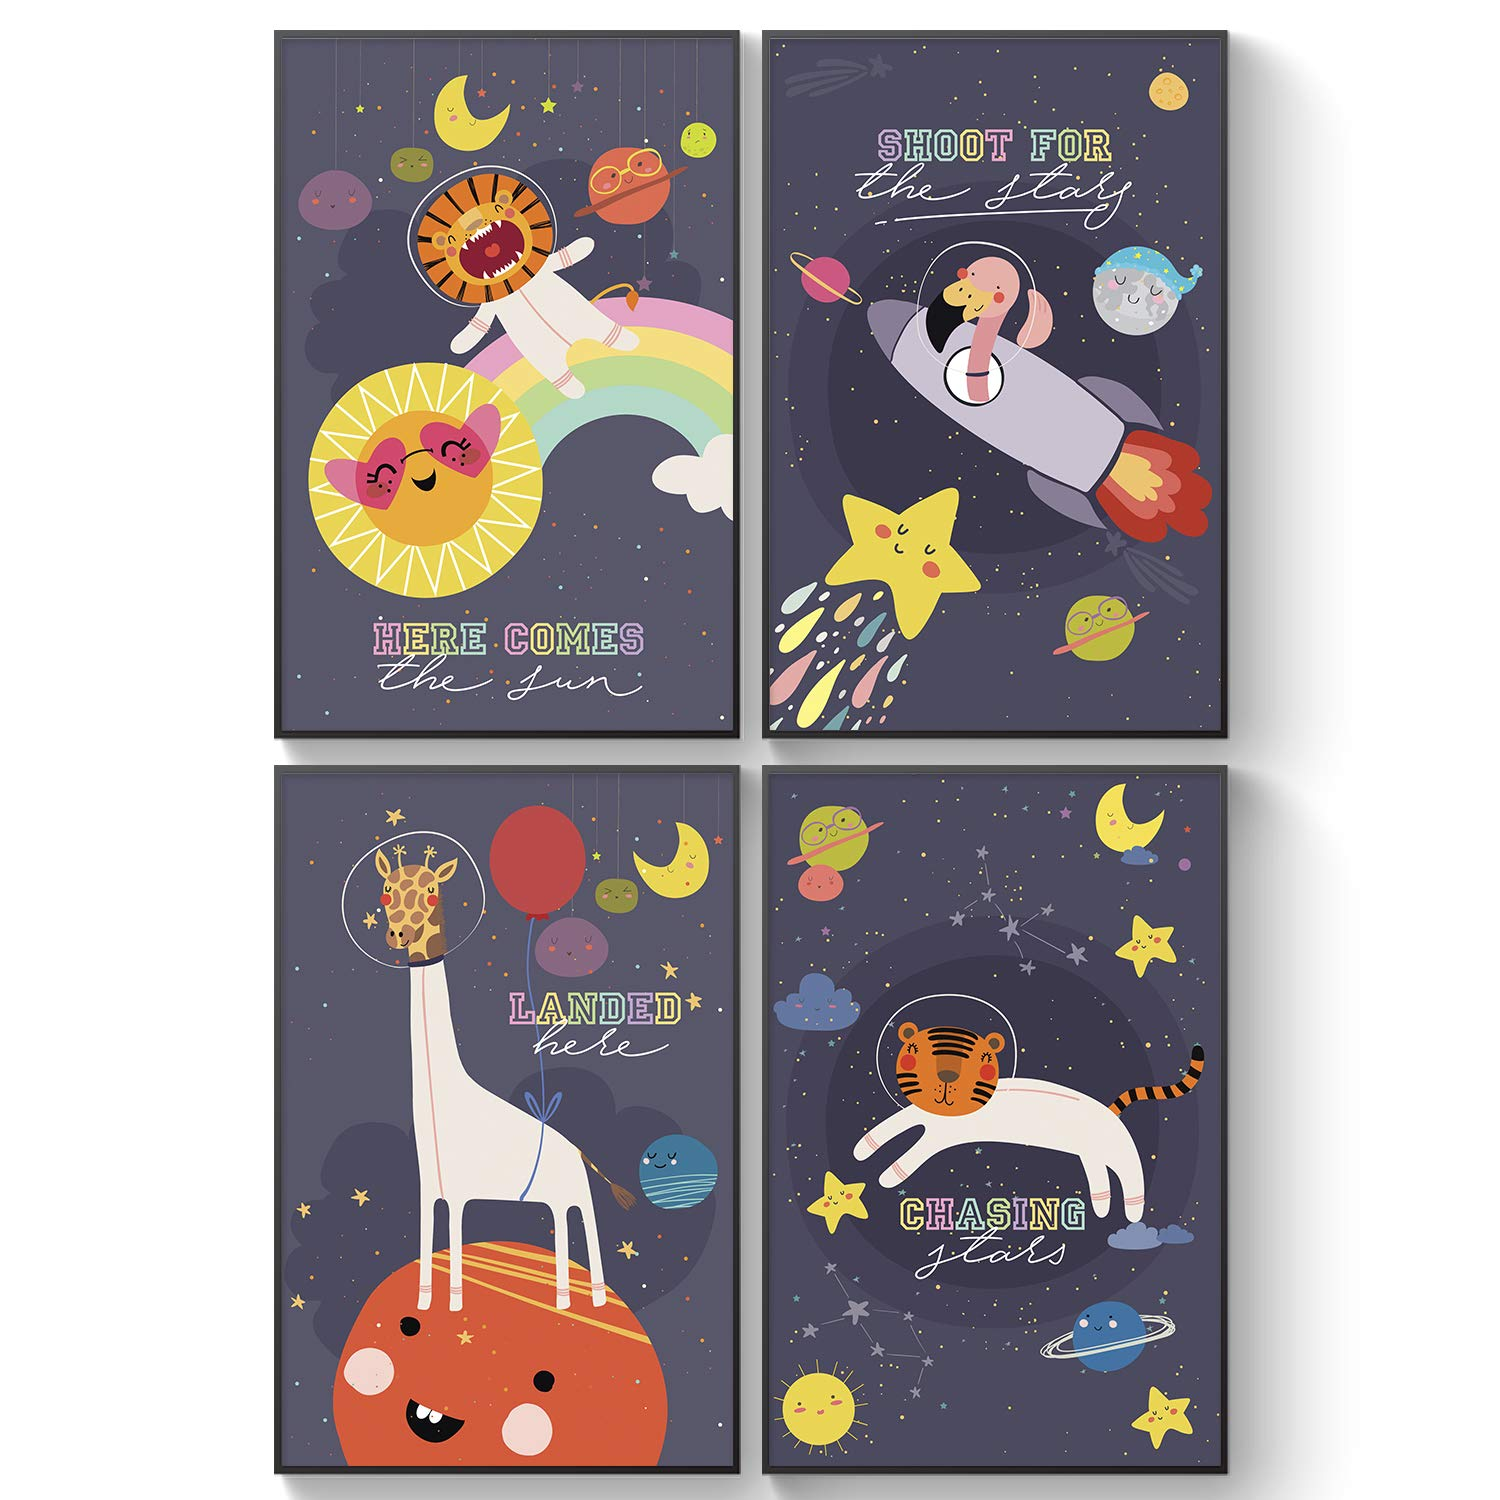 Pillow Toast Baby Wall Art Nursery Decor 11by 17inches Space Posters For Boys Room Little Astronaut Children Wall Art Kids Room Decor Moon Stars Baby Room Decor